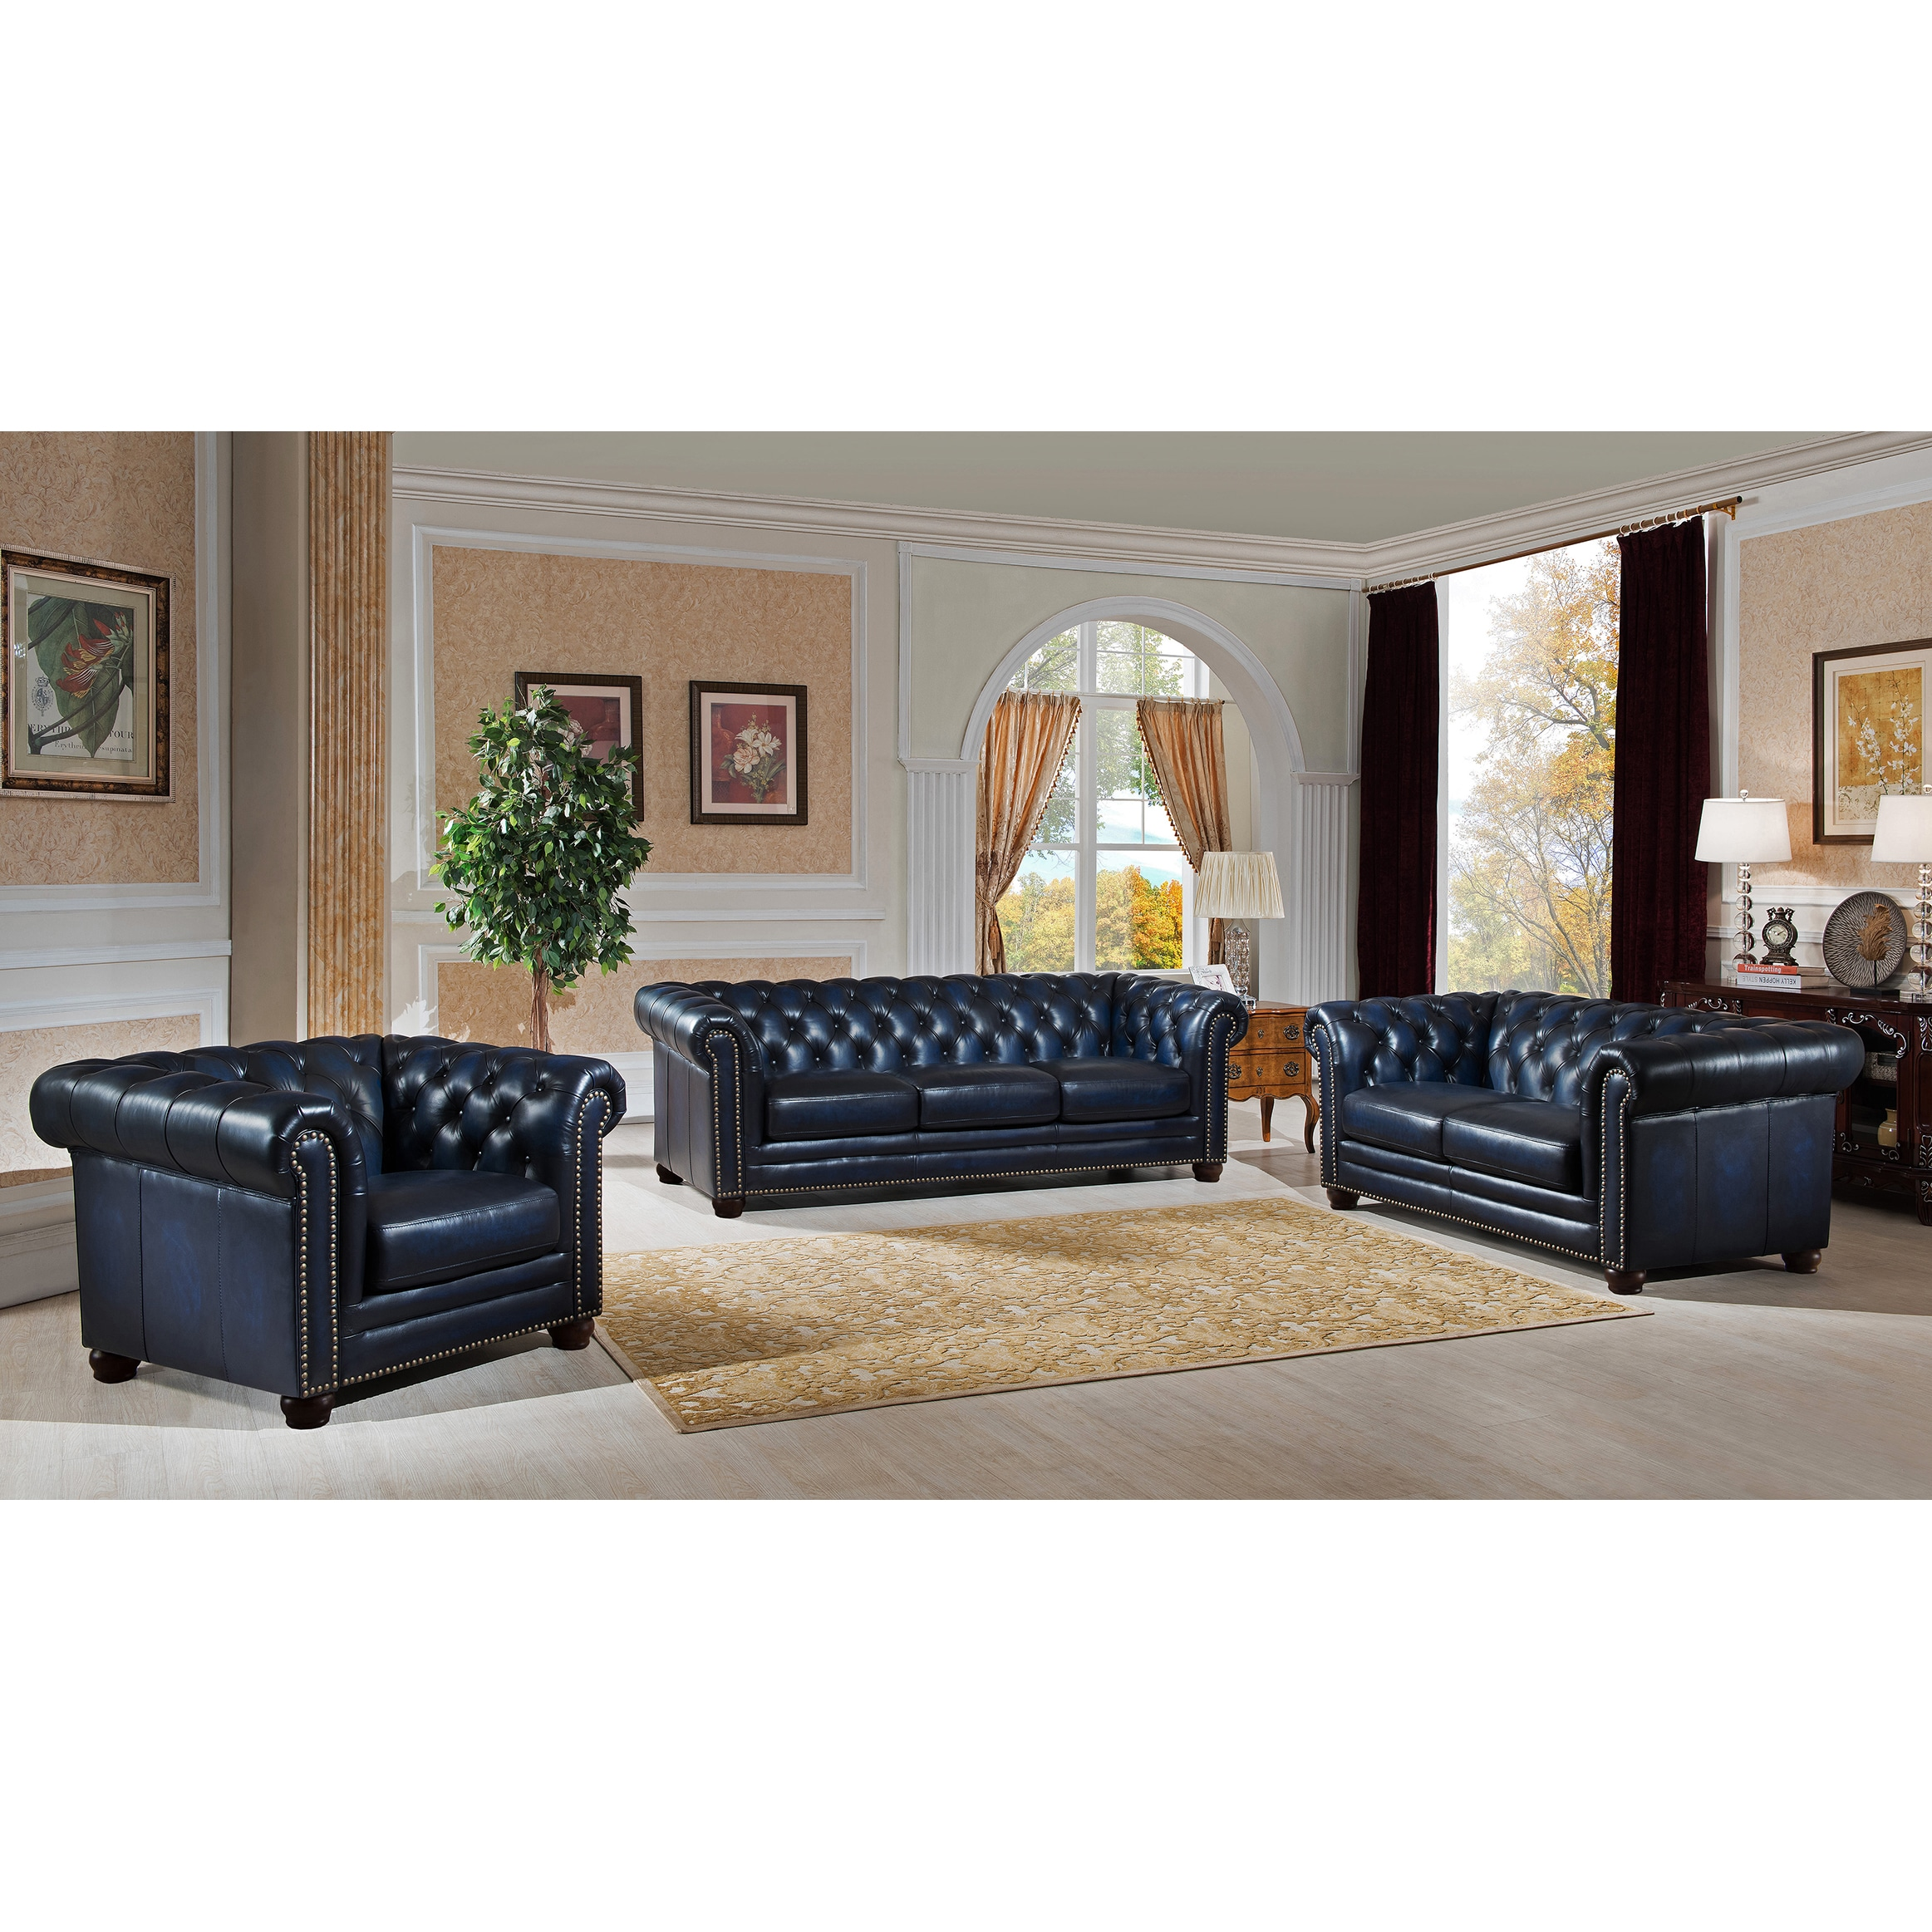 Sofa In Chesterfield Look Blue Hand Rubbed Genuine Leather Chesterfield Sofa Loveseat And Chair Set